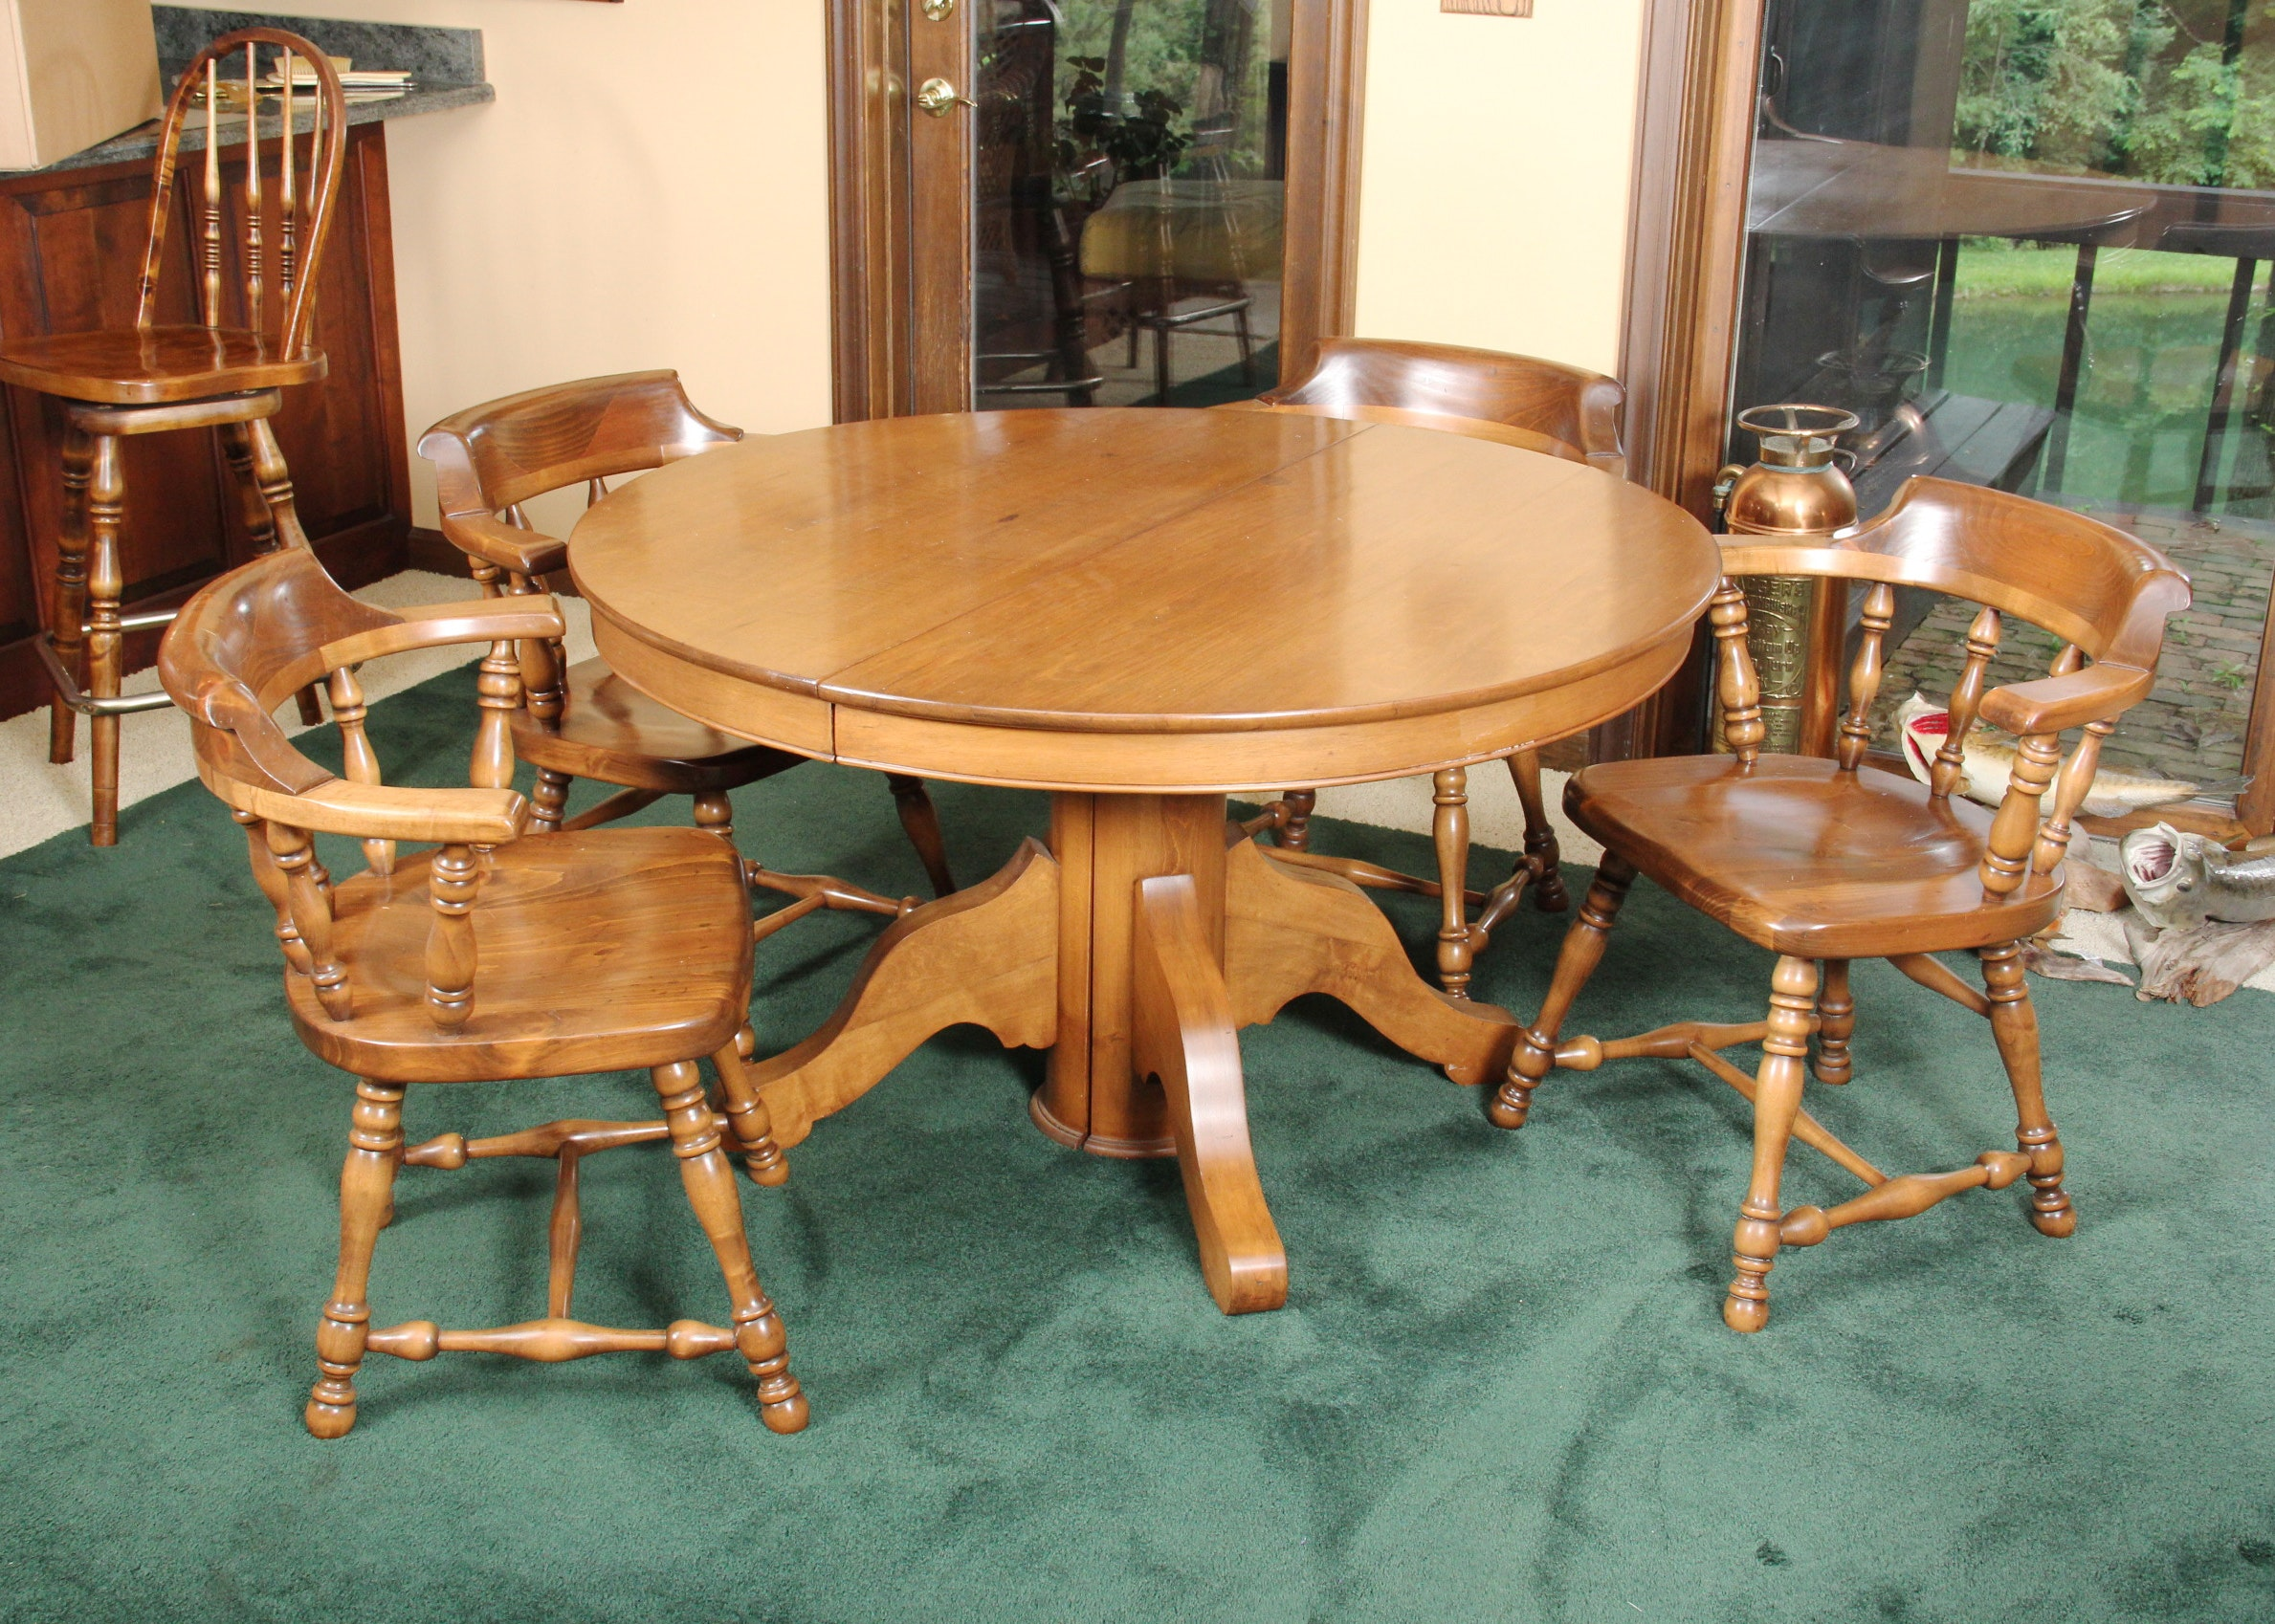 Maple Kitchen Table With Chair And Bench Ebth: Round Maple Dining Table And Chairs